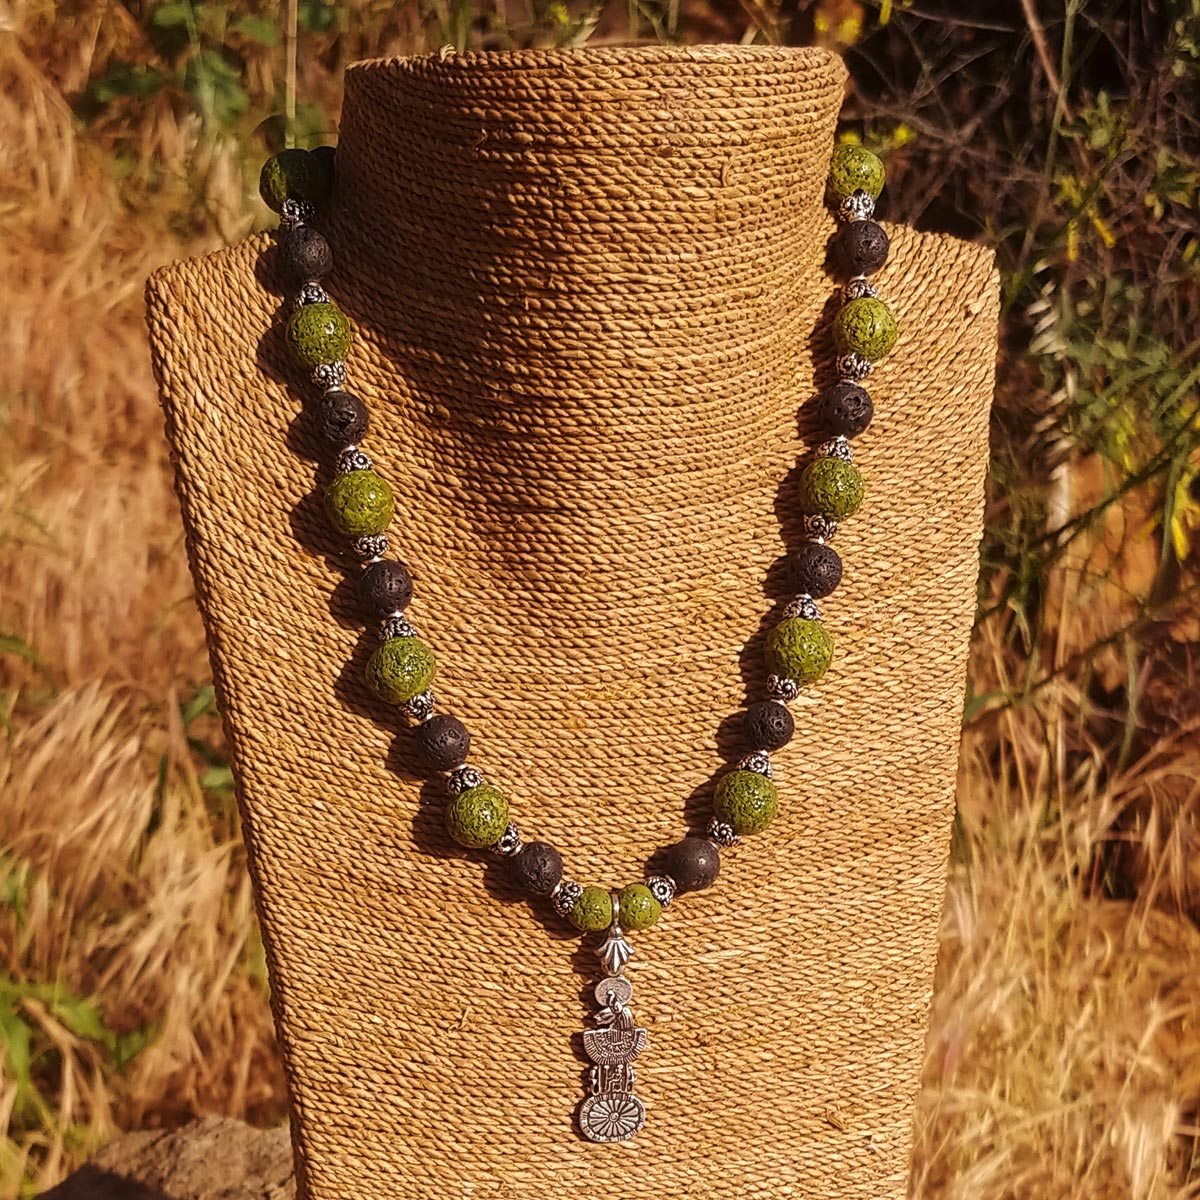 Women's Necklace in Nile Green Faience and Matte Black Lava - Em Hotep Collection